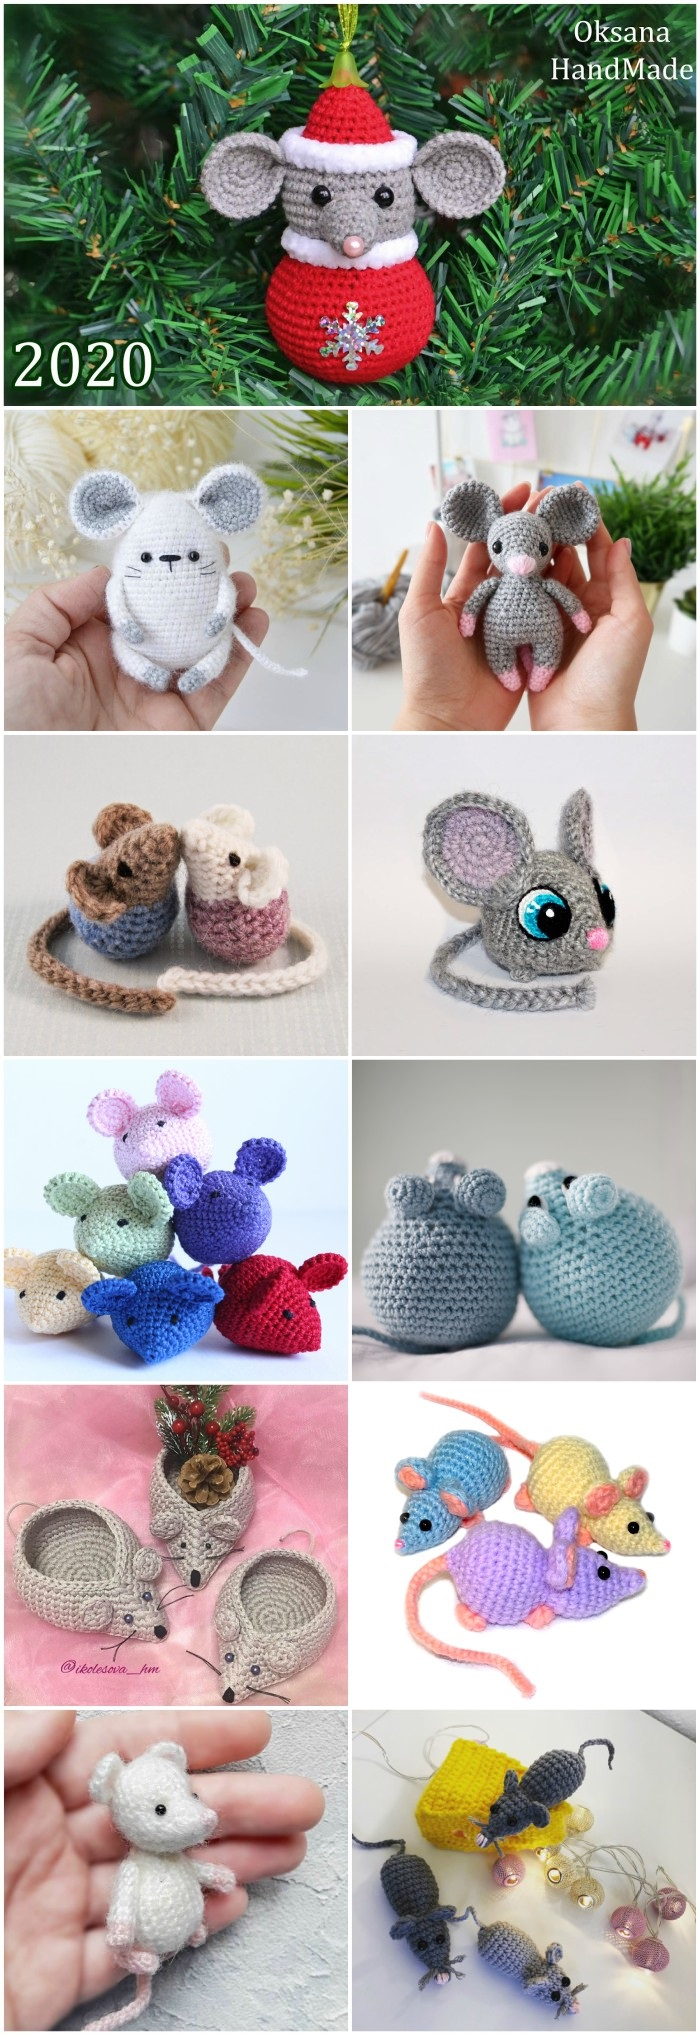 22 Quick & Easy Beginner Crochet Patterns • Simply Collectible Crochet | 2035x700